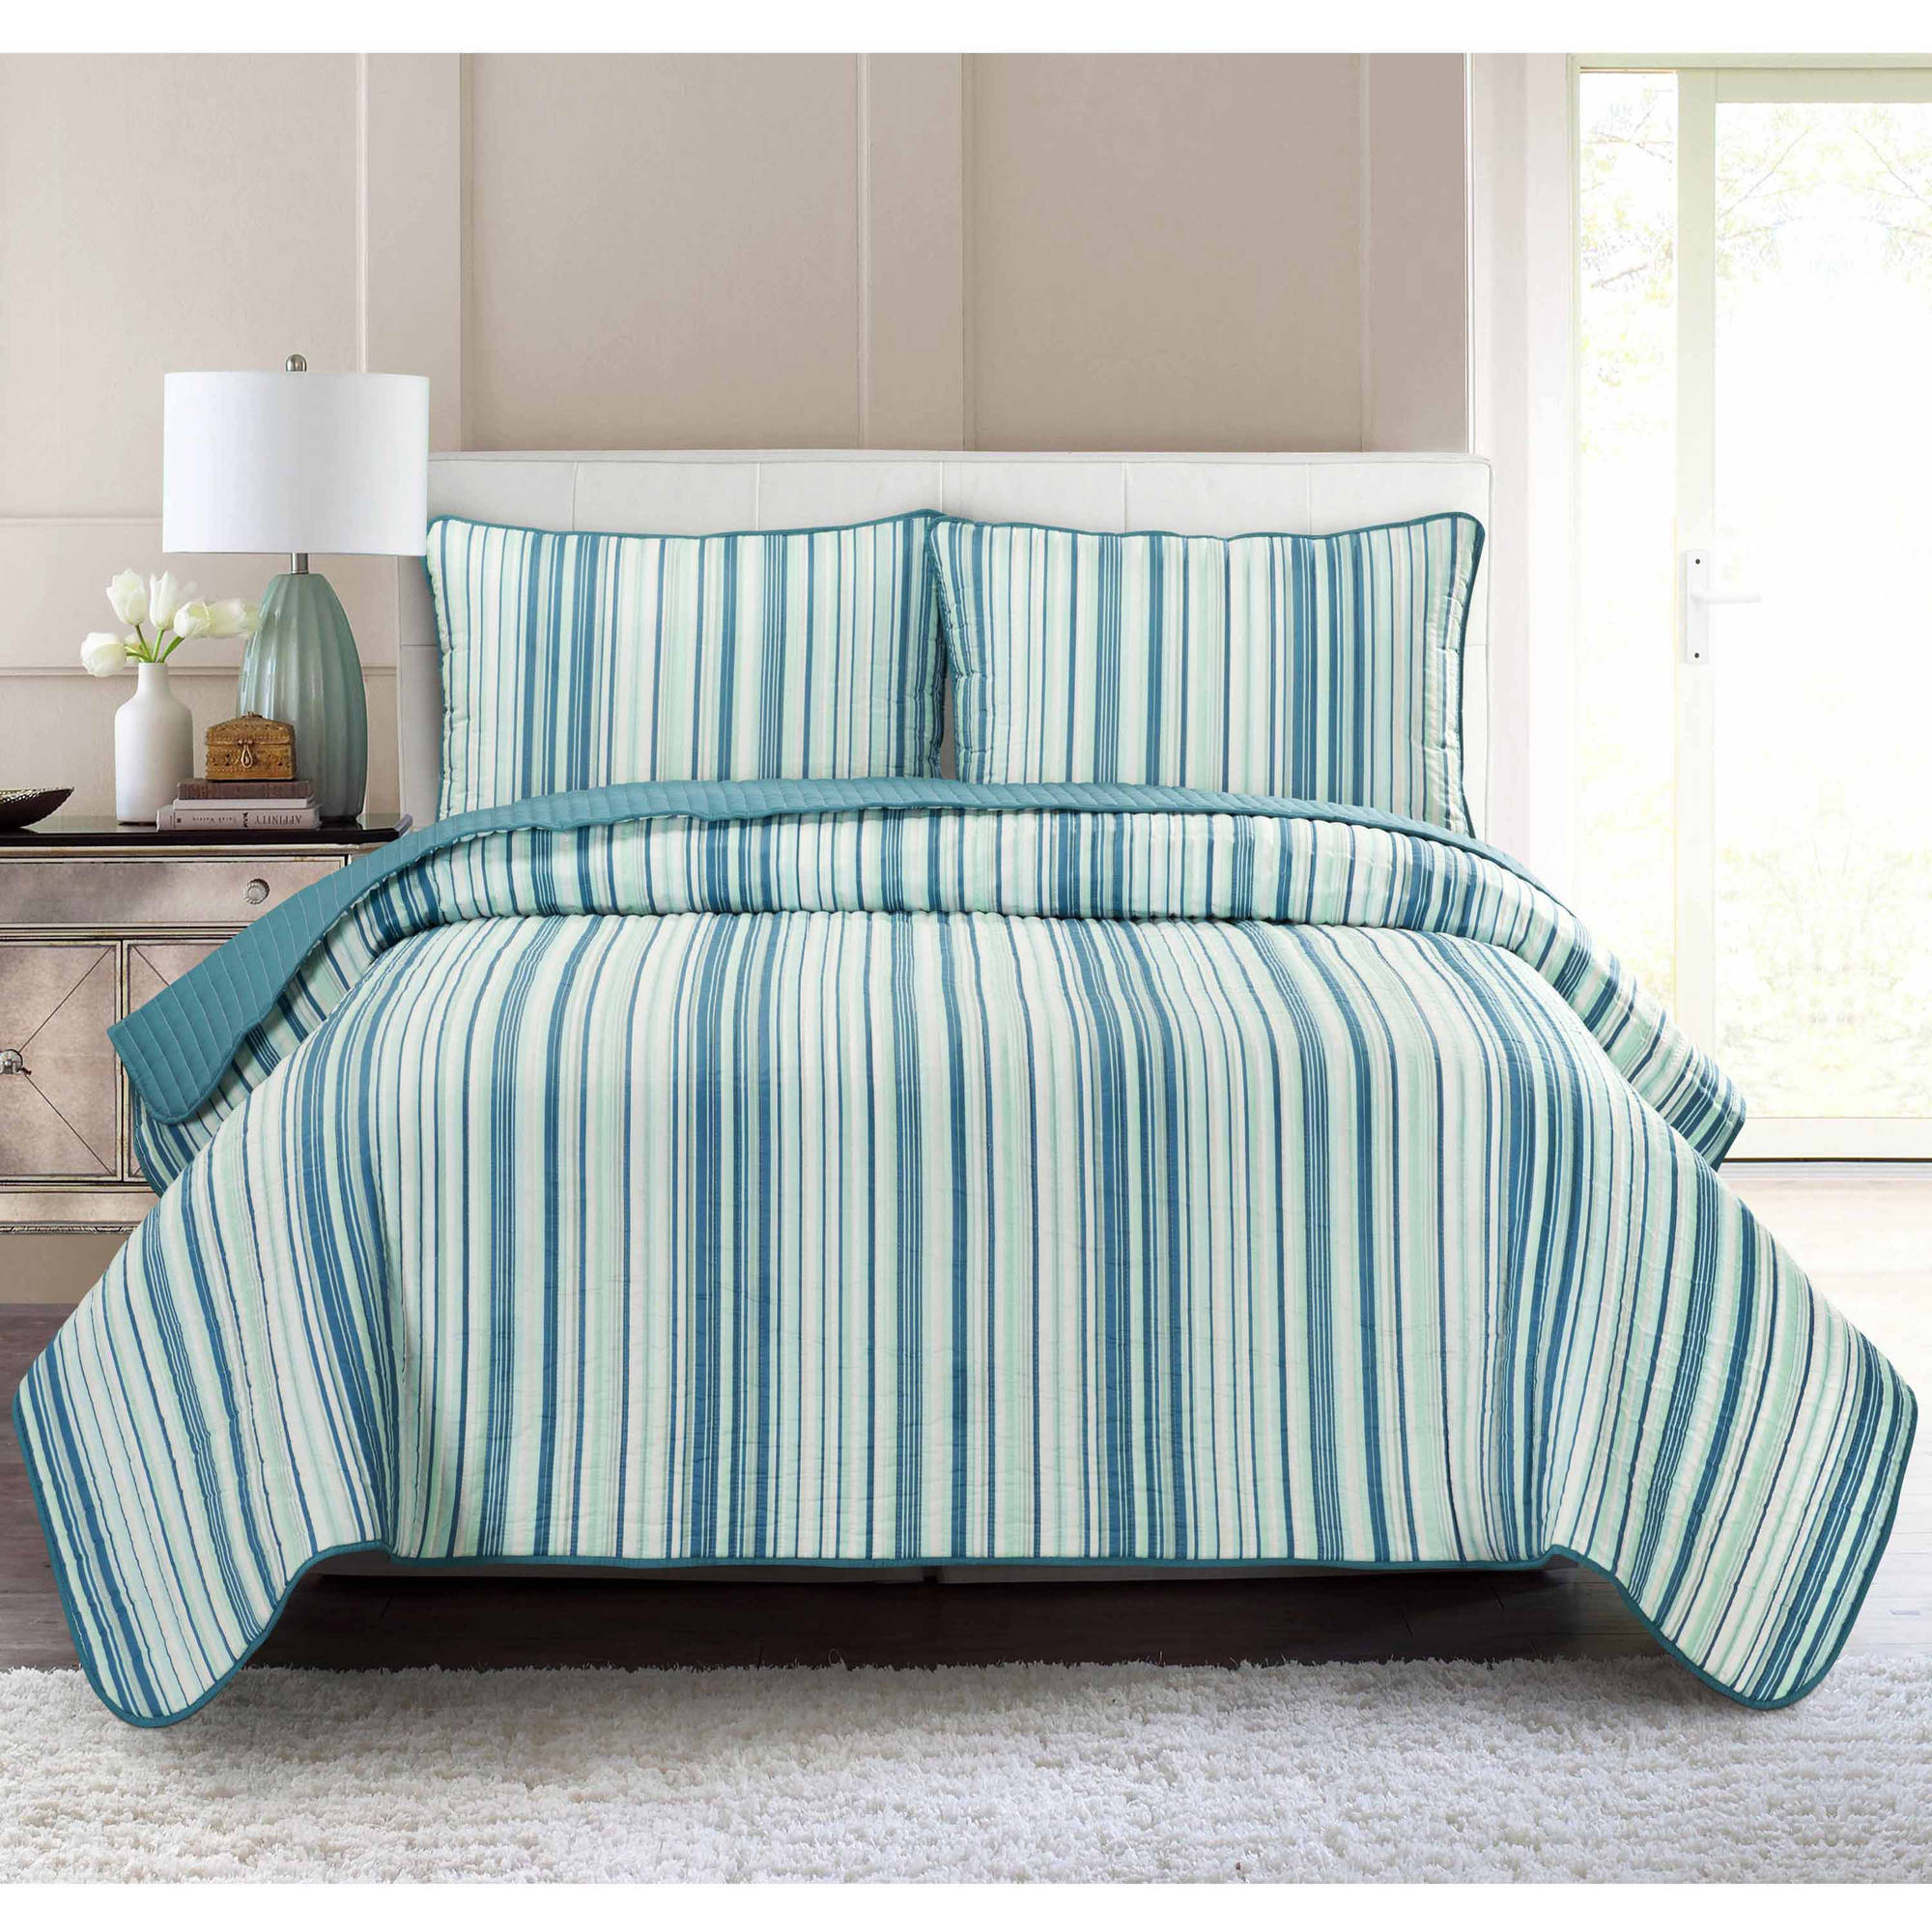 South Bay Stripe Quilt Set by Generic